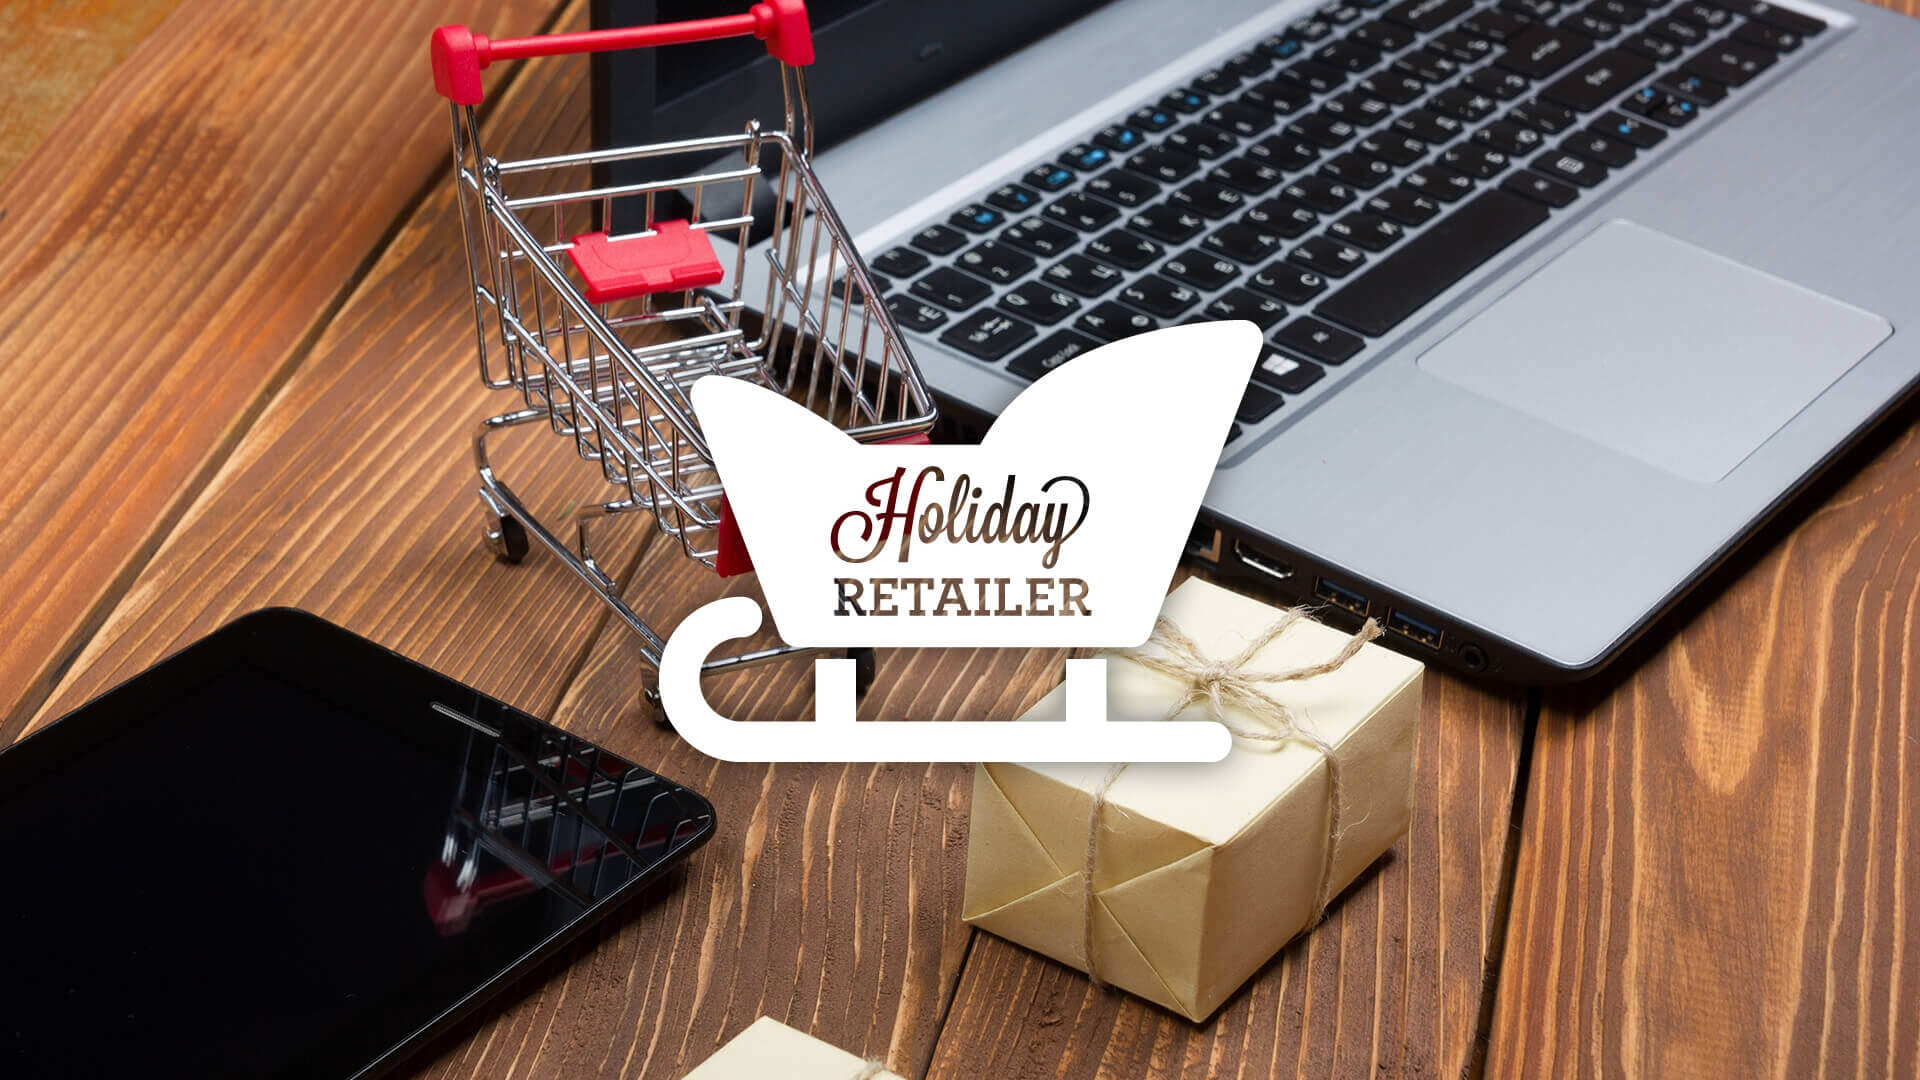 Retailers: The high cost of holiday packages going undelivered